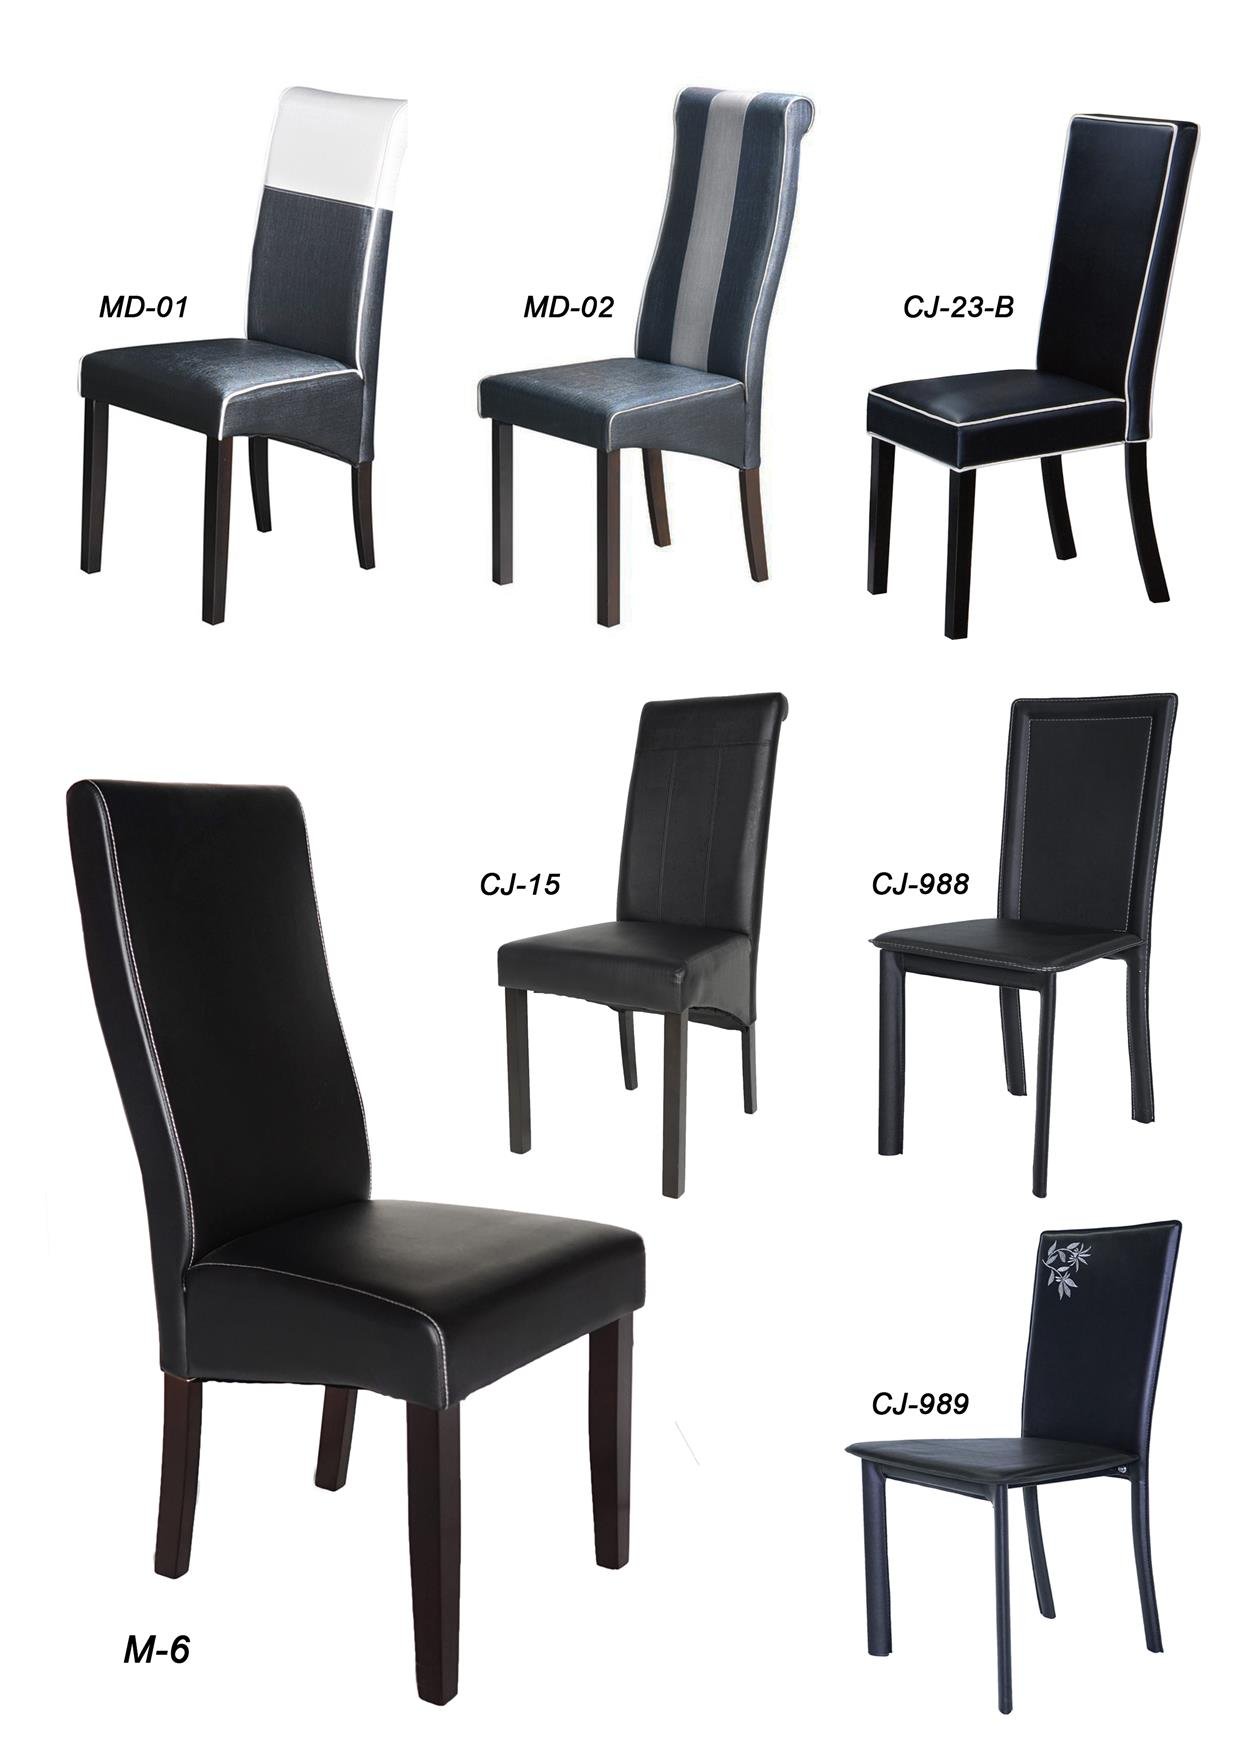 MD-02 PREMIUM PU LEATHER RESTAURANT CAFE DINING ROOM CHAIR TABLE BLACK